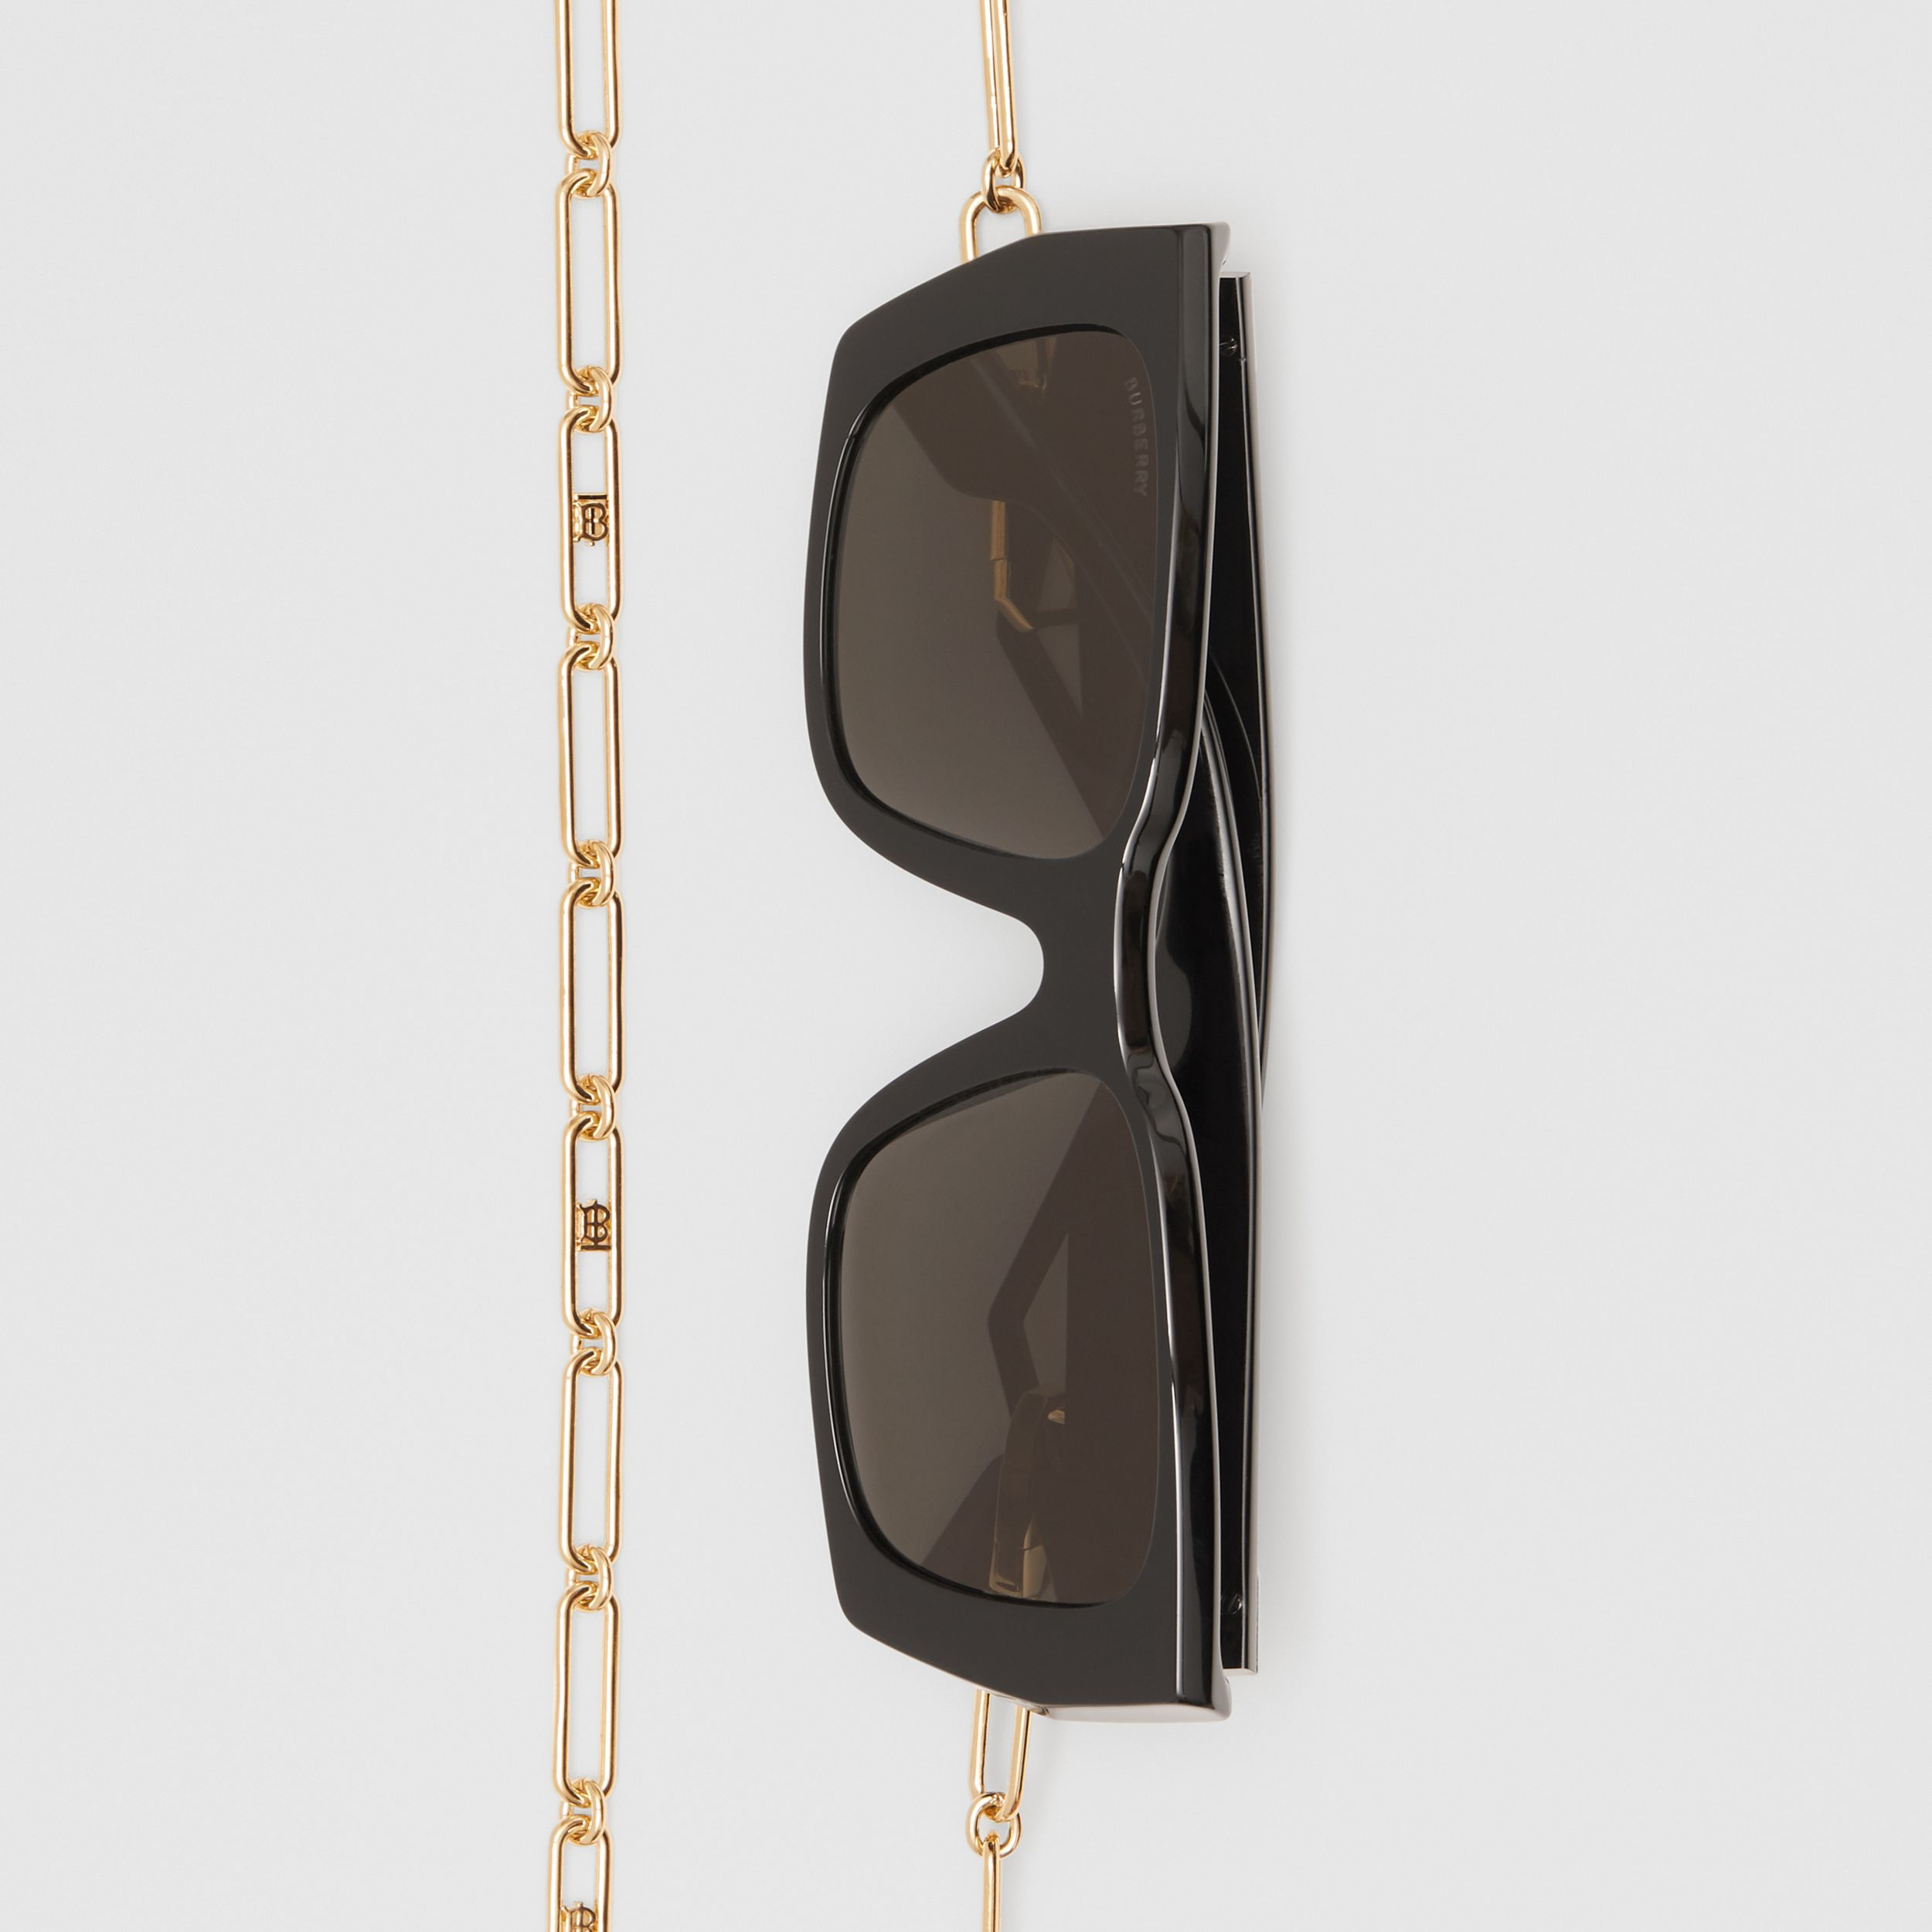 B Motif Rectangular Frame Sunglasses with Chain in Black - Women | Burberry - 4